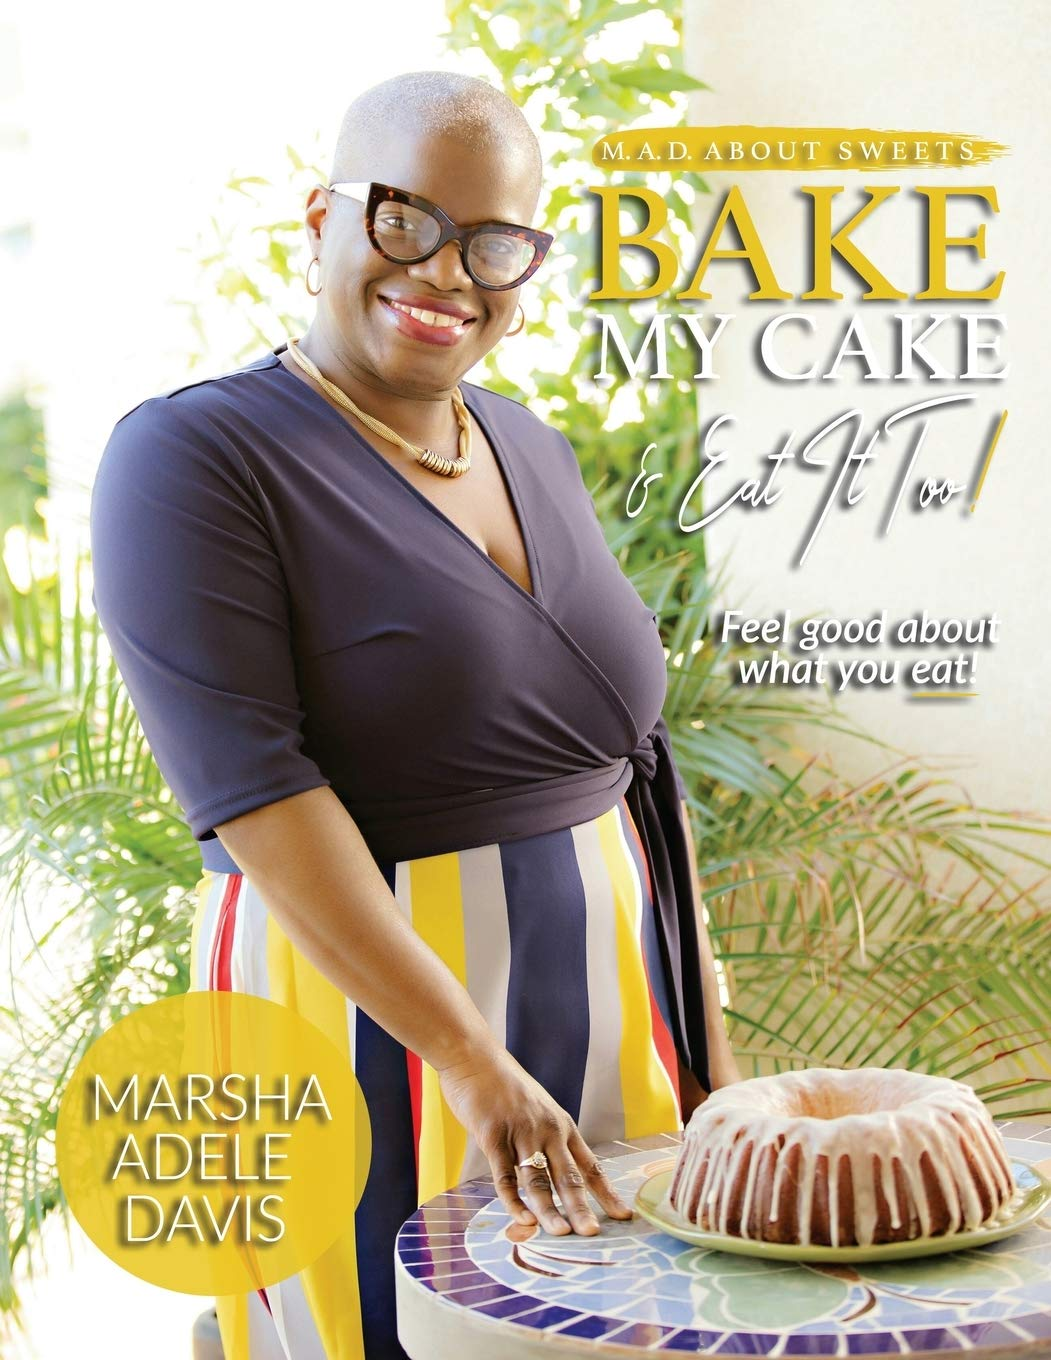 M A D About Sweets Bake My Cake And Eat It Too Davis Marsha Adele 9780692113790 Amazon Com Books